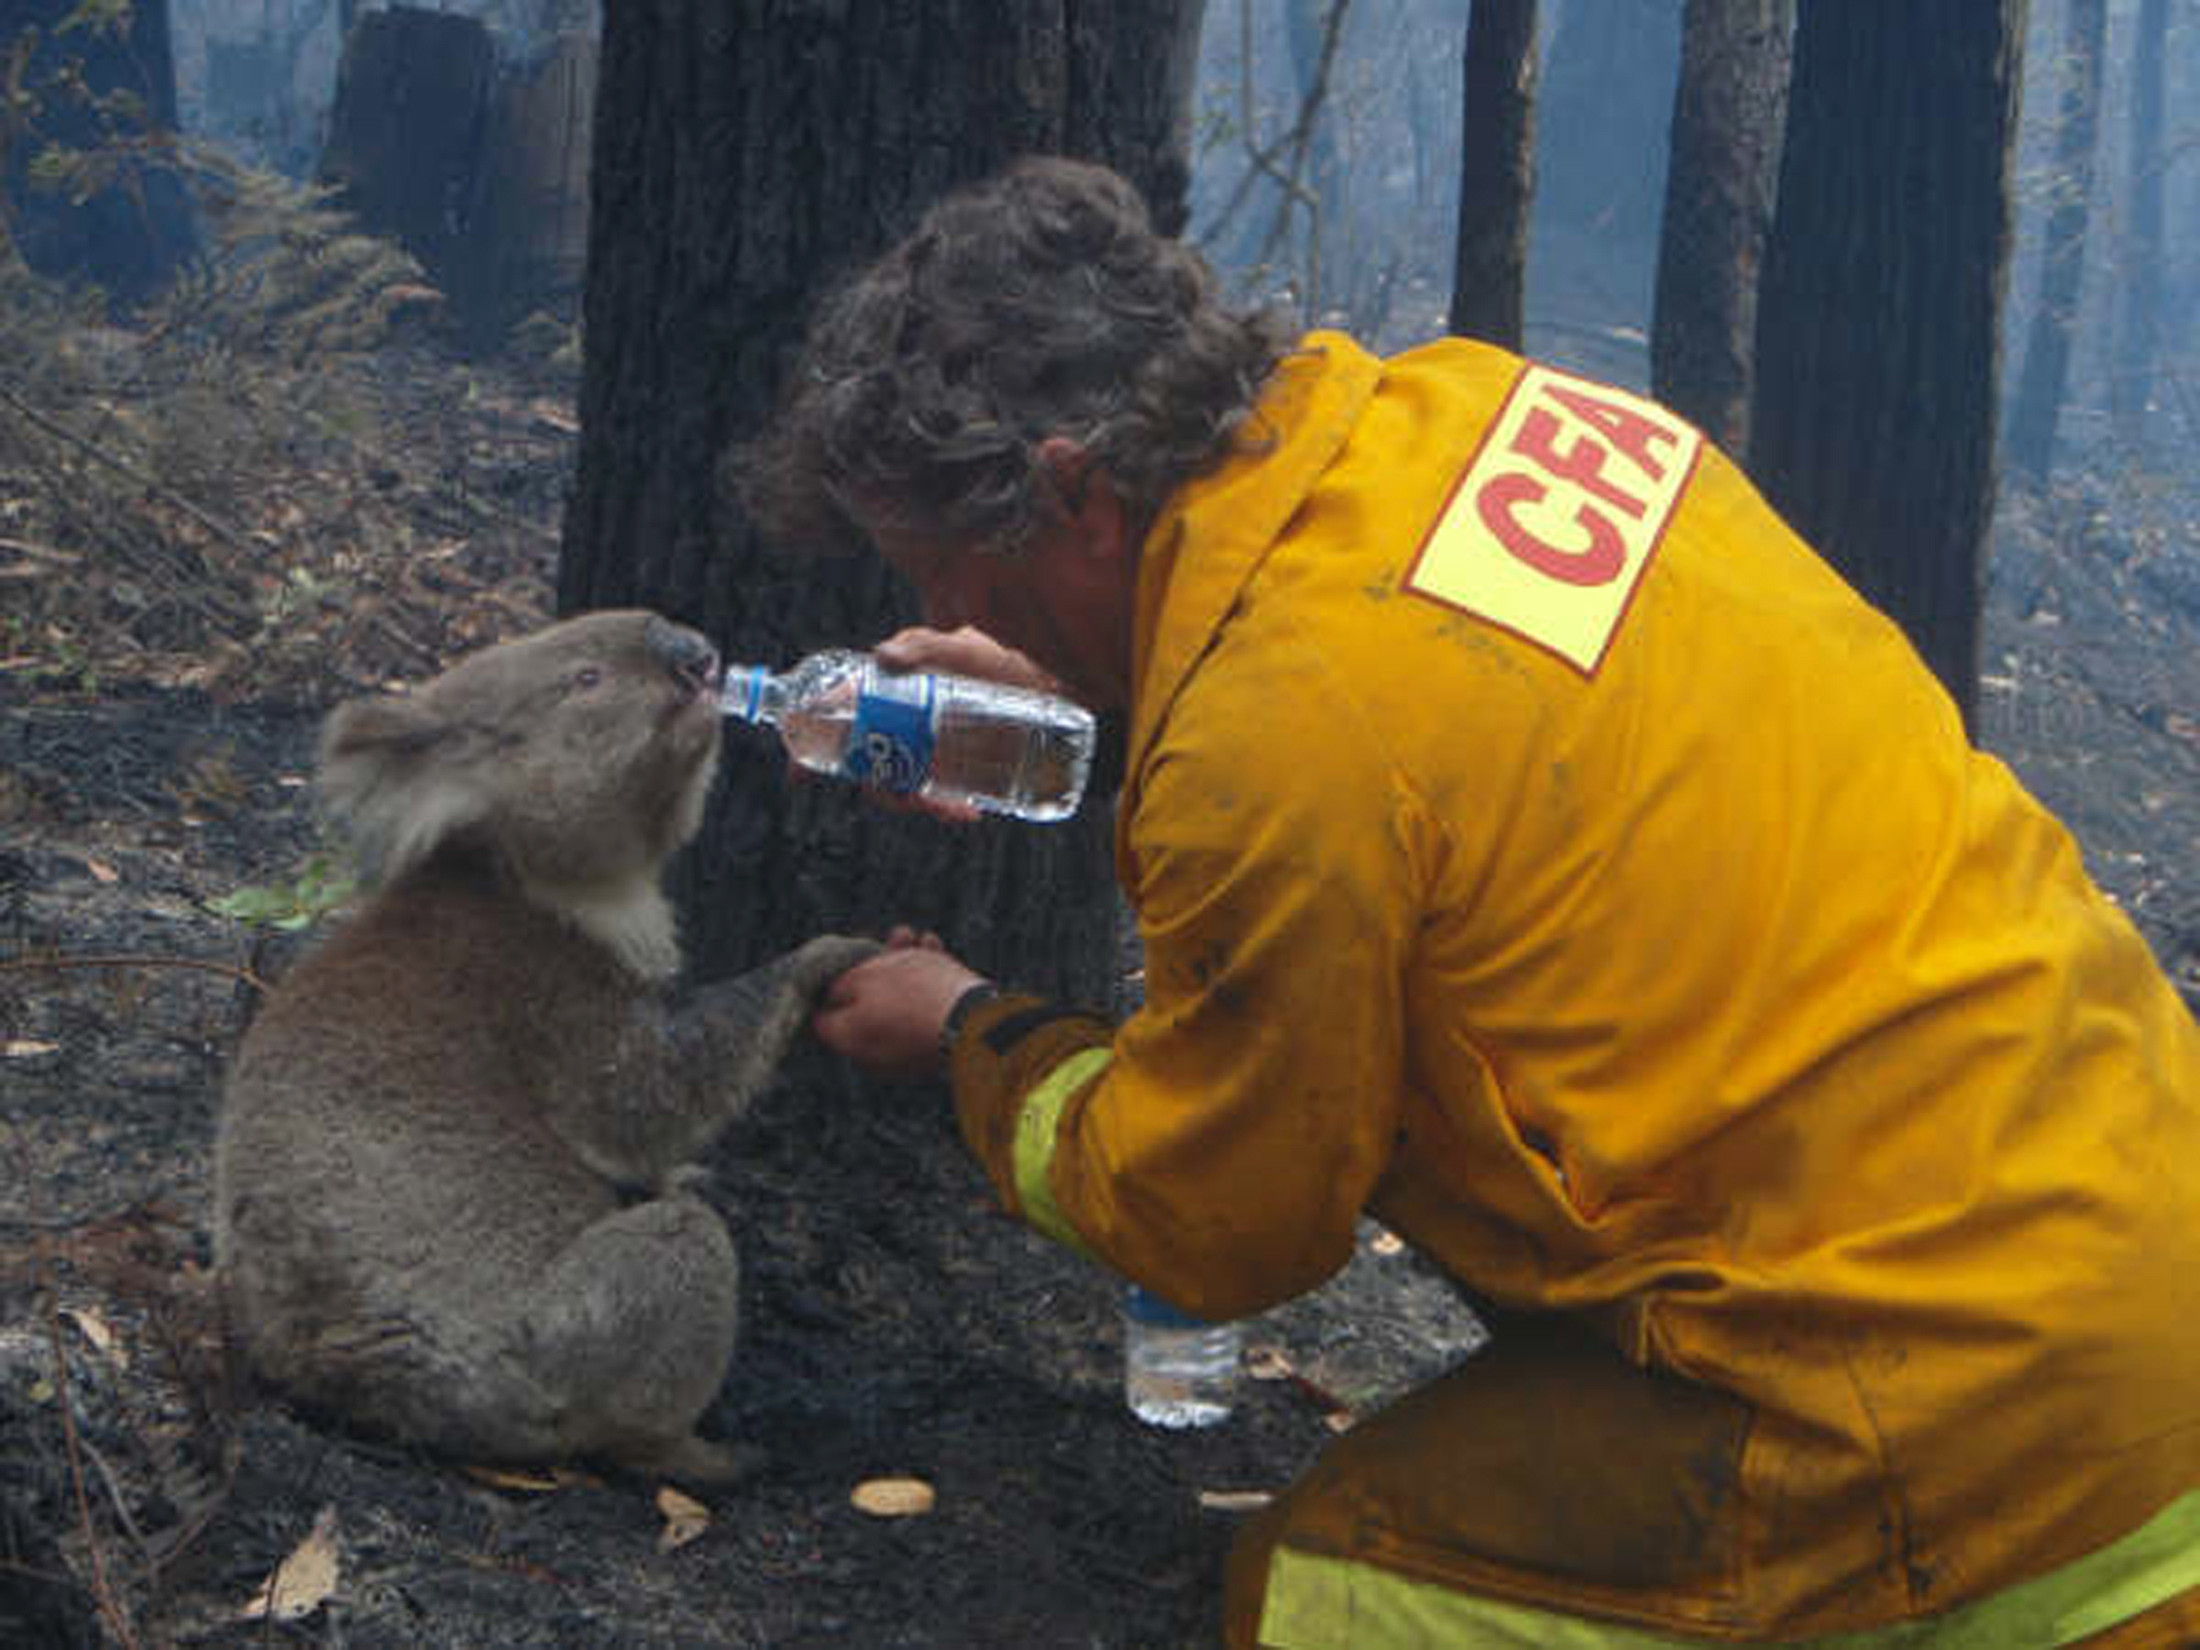 A koala named Sam is given a drink of water by Country Fire Authority volunteer fire fighter Dave Tree as he rescued her after deadly fires swept through the area of Mirboo North, about 120km (75 miles) southeast of Melbourne, February 8, 2009.